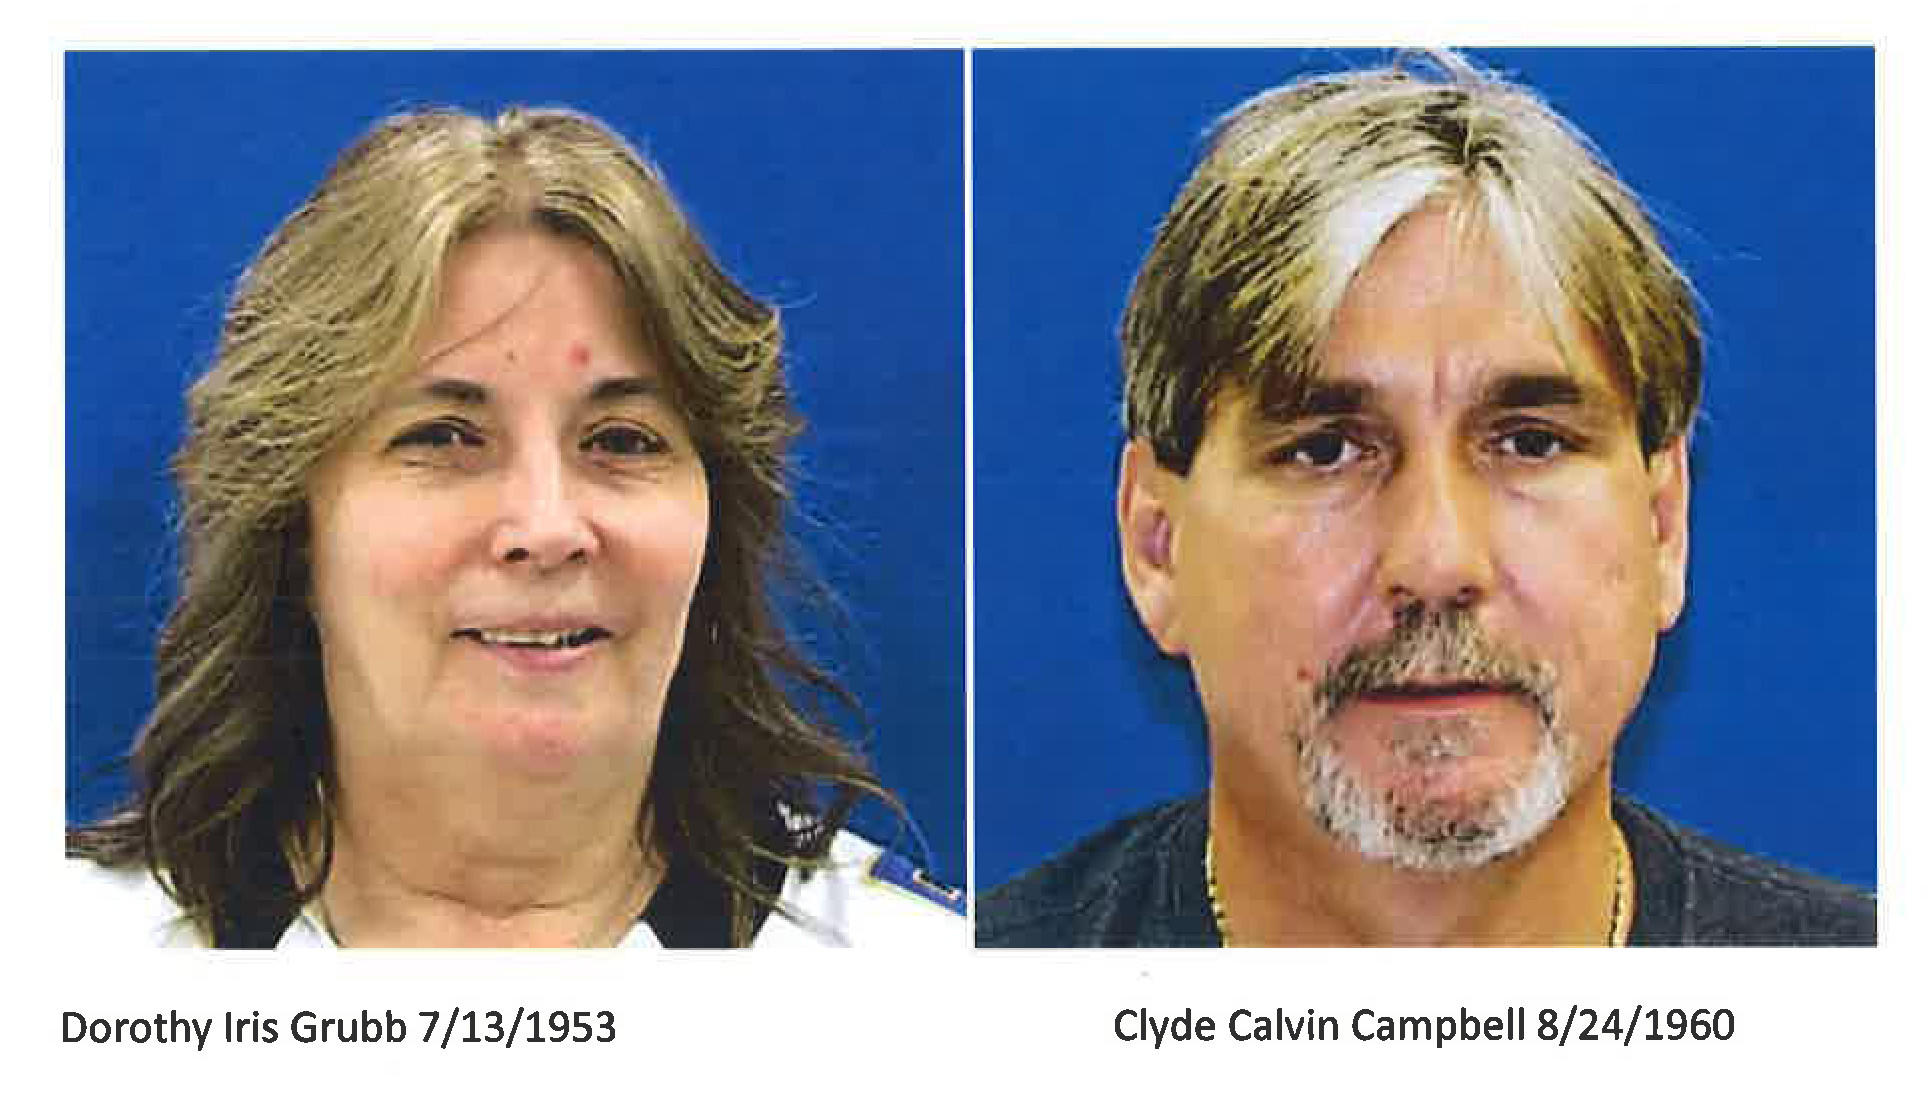 Police have identified a body found in Dundalk July 29, 2014, as Dorothy Iris Grubb of North Point. Her boyfriend, Clyde Calvin Campbell, has been arrested on an open warrant for a prior weapons violations, police said.